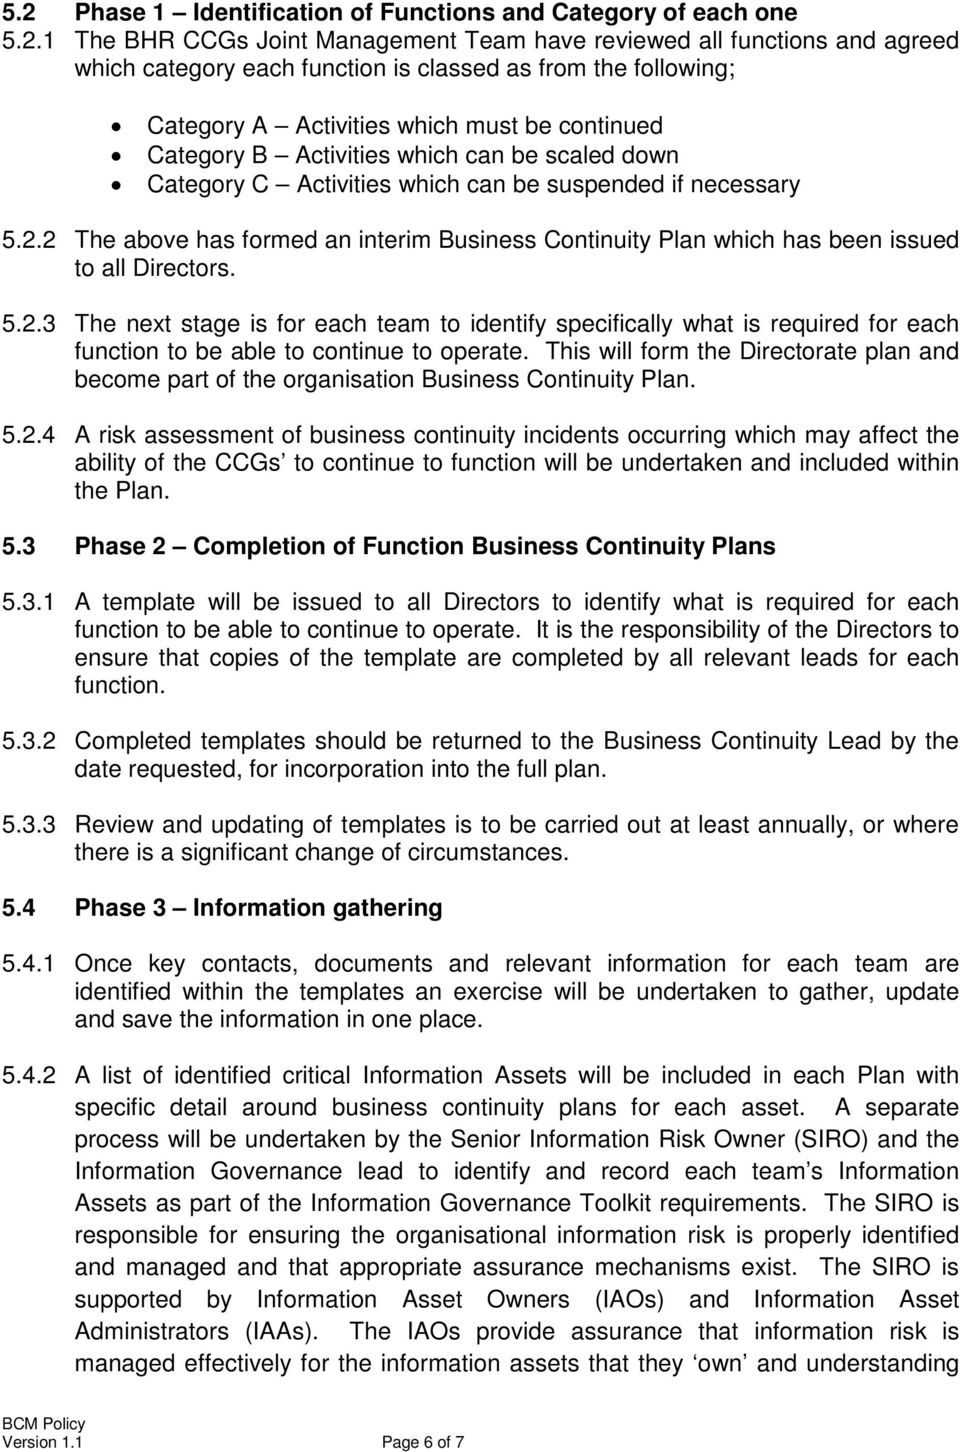 2 The above has formed an interim Business Continuity Plan which has been issued to all Directors. 5.2.3 The next stage is for each team to identify specifically what is required for each function to be able to continue to operate.